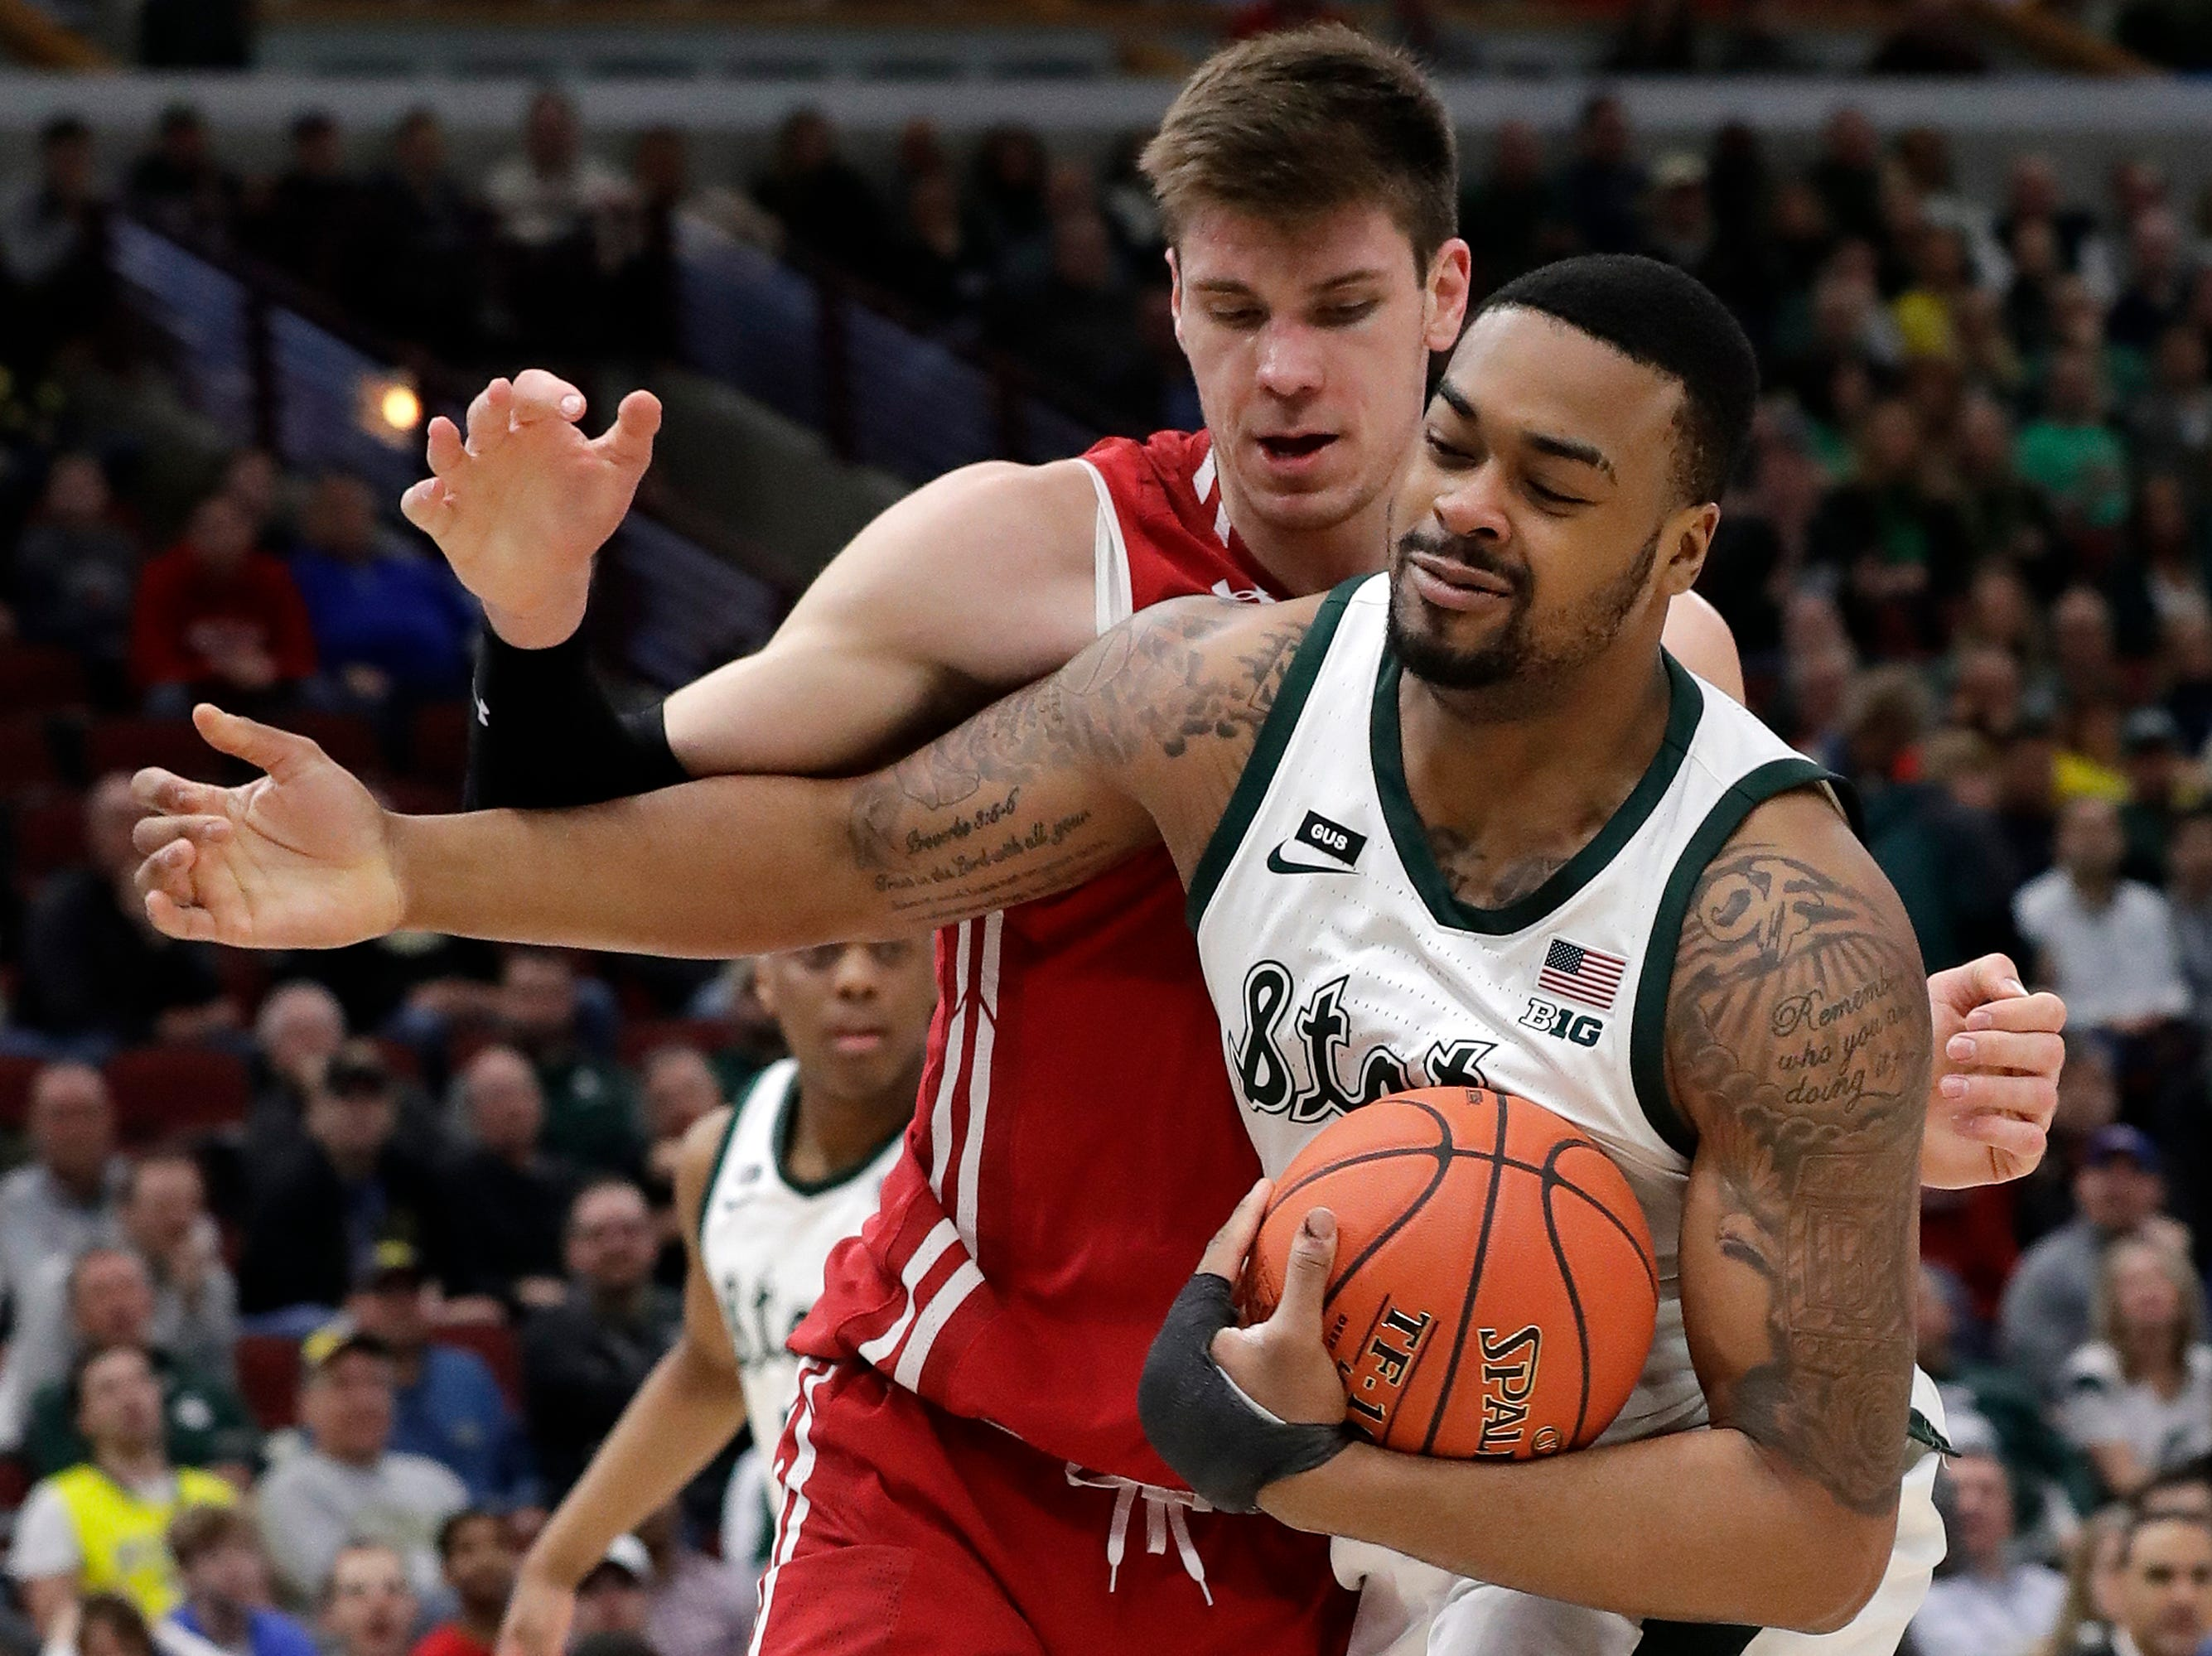 Michigan State's Nick Ward, right, battles for a loose ball against Wisconsin's Ethan Happ during the first half of an NCAA college basketball game in the semifinals of the Big Ten Conference tournament, Saturday, March 16, 2019, in Chicago.